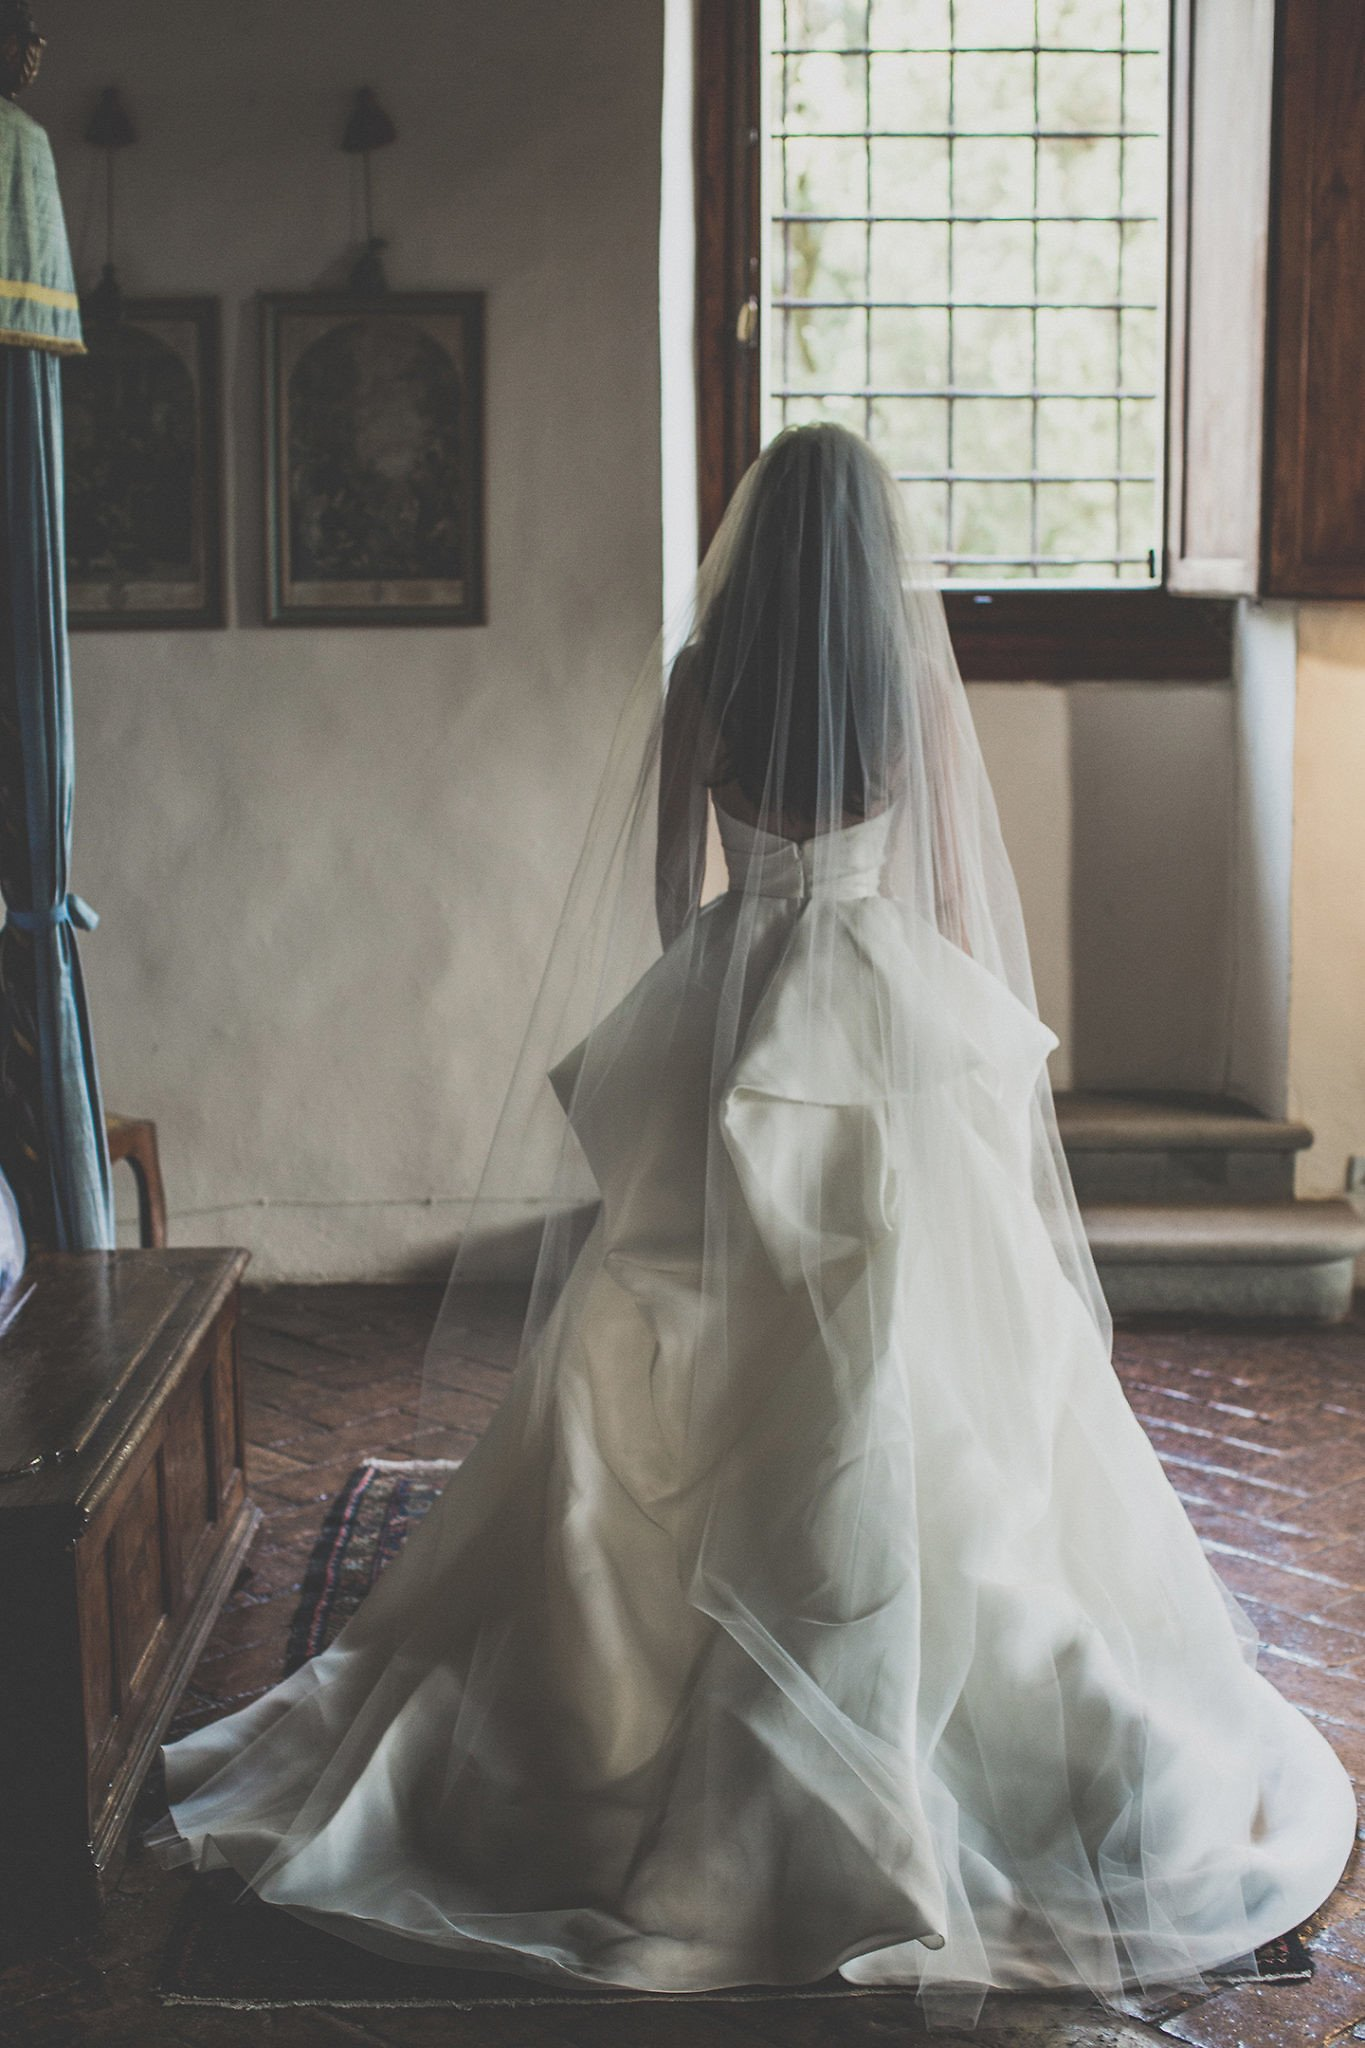 Chinese-bride-wedding-day-vignamaggio-Tuscany